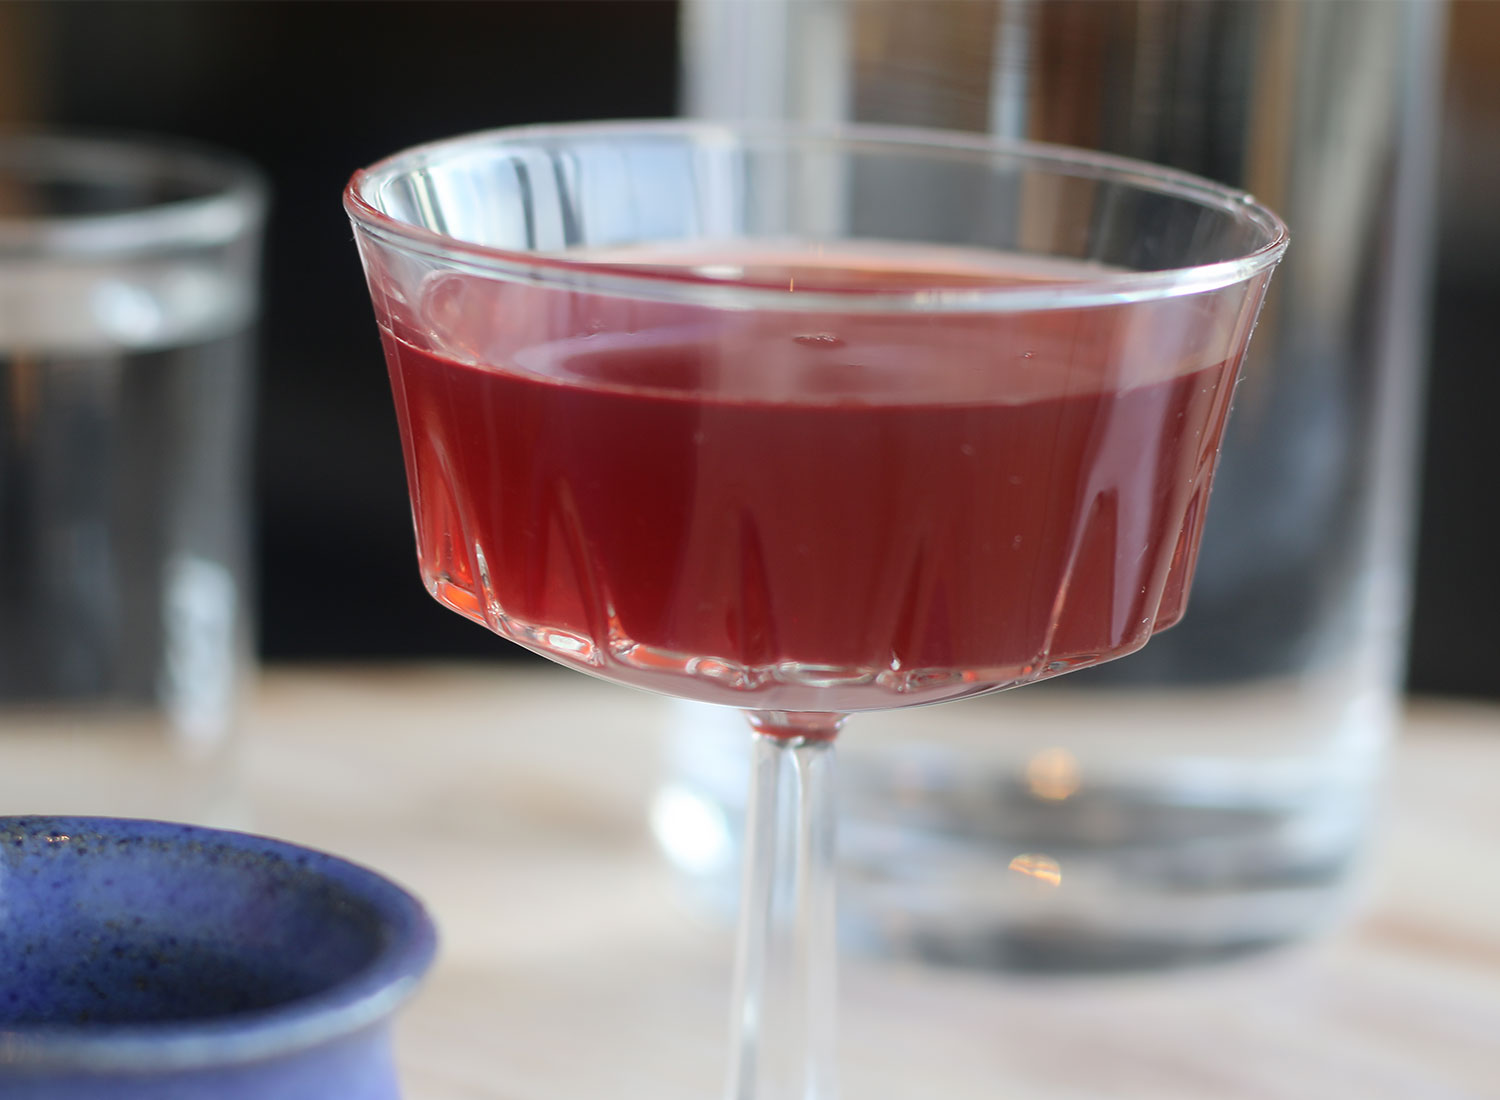 Plum hooch at Flower + Bone restaurant in Santa Rosa. Heather Irwin/Sonoma Magazine.